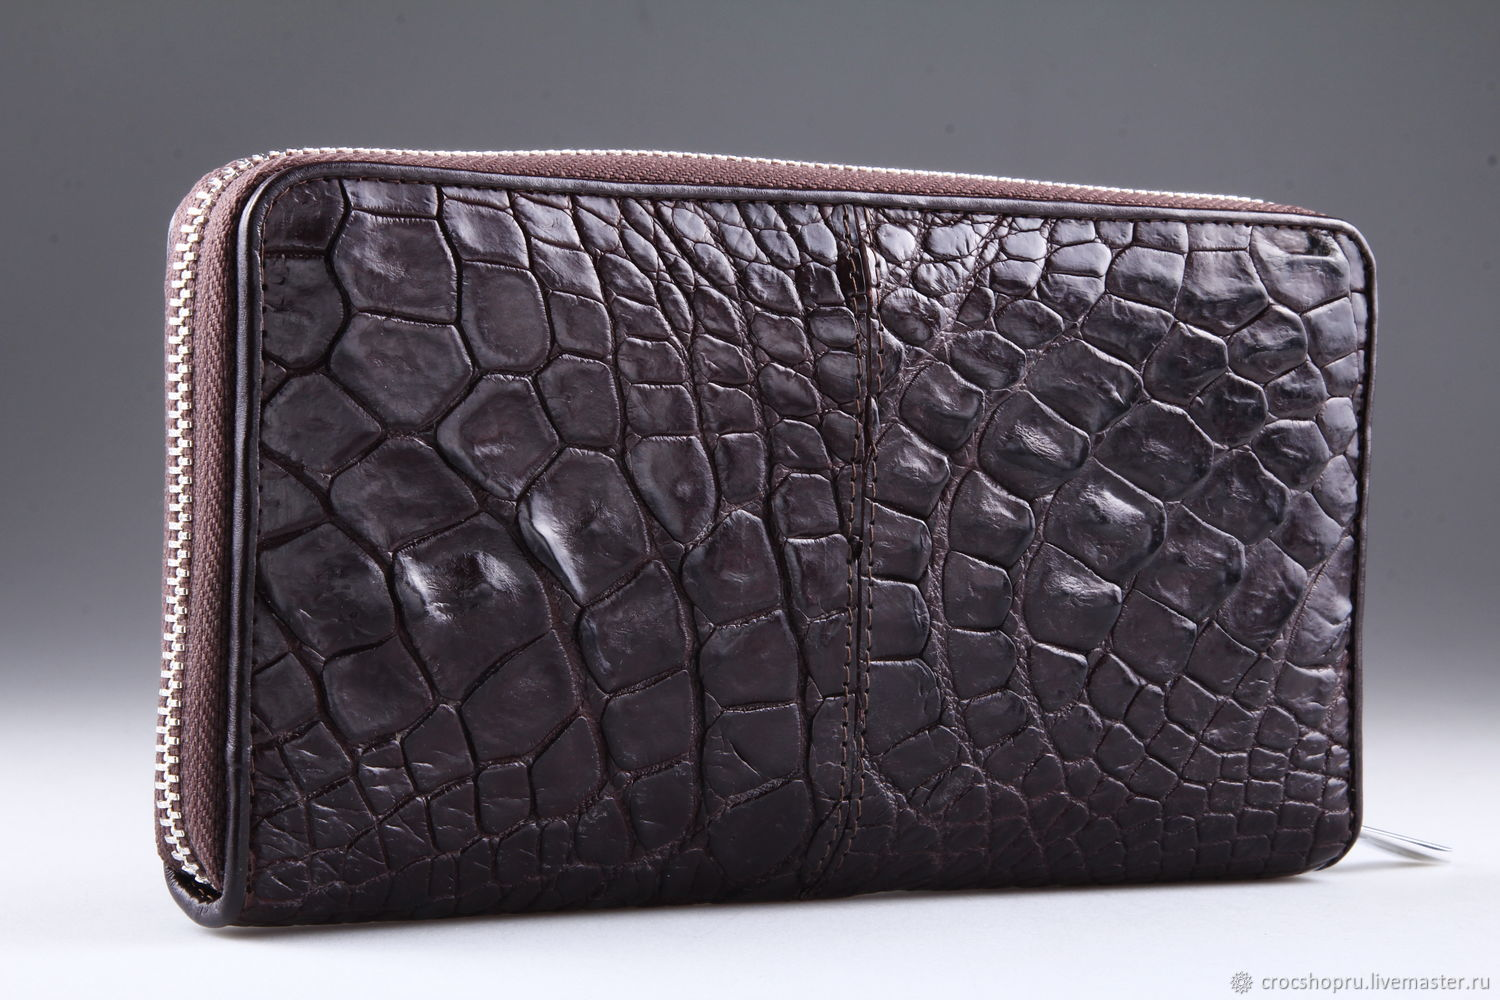 Wallet crocodile leather IMA0206VK5, Wallets, Moscow,  Фото №1